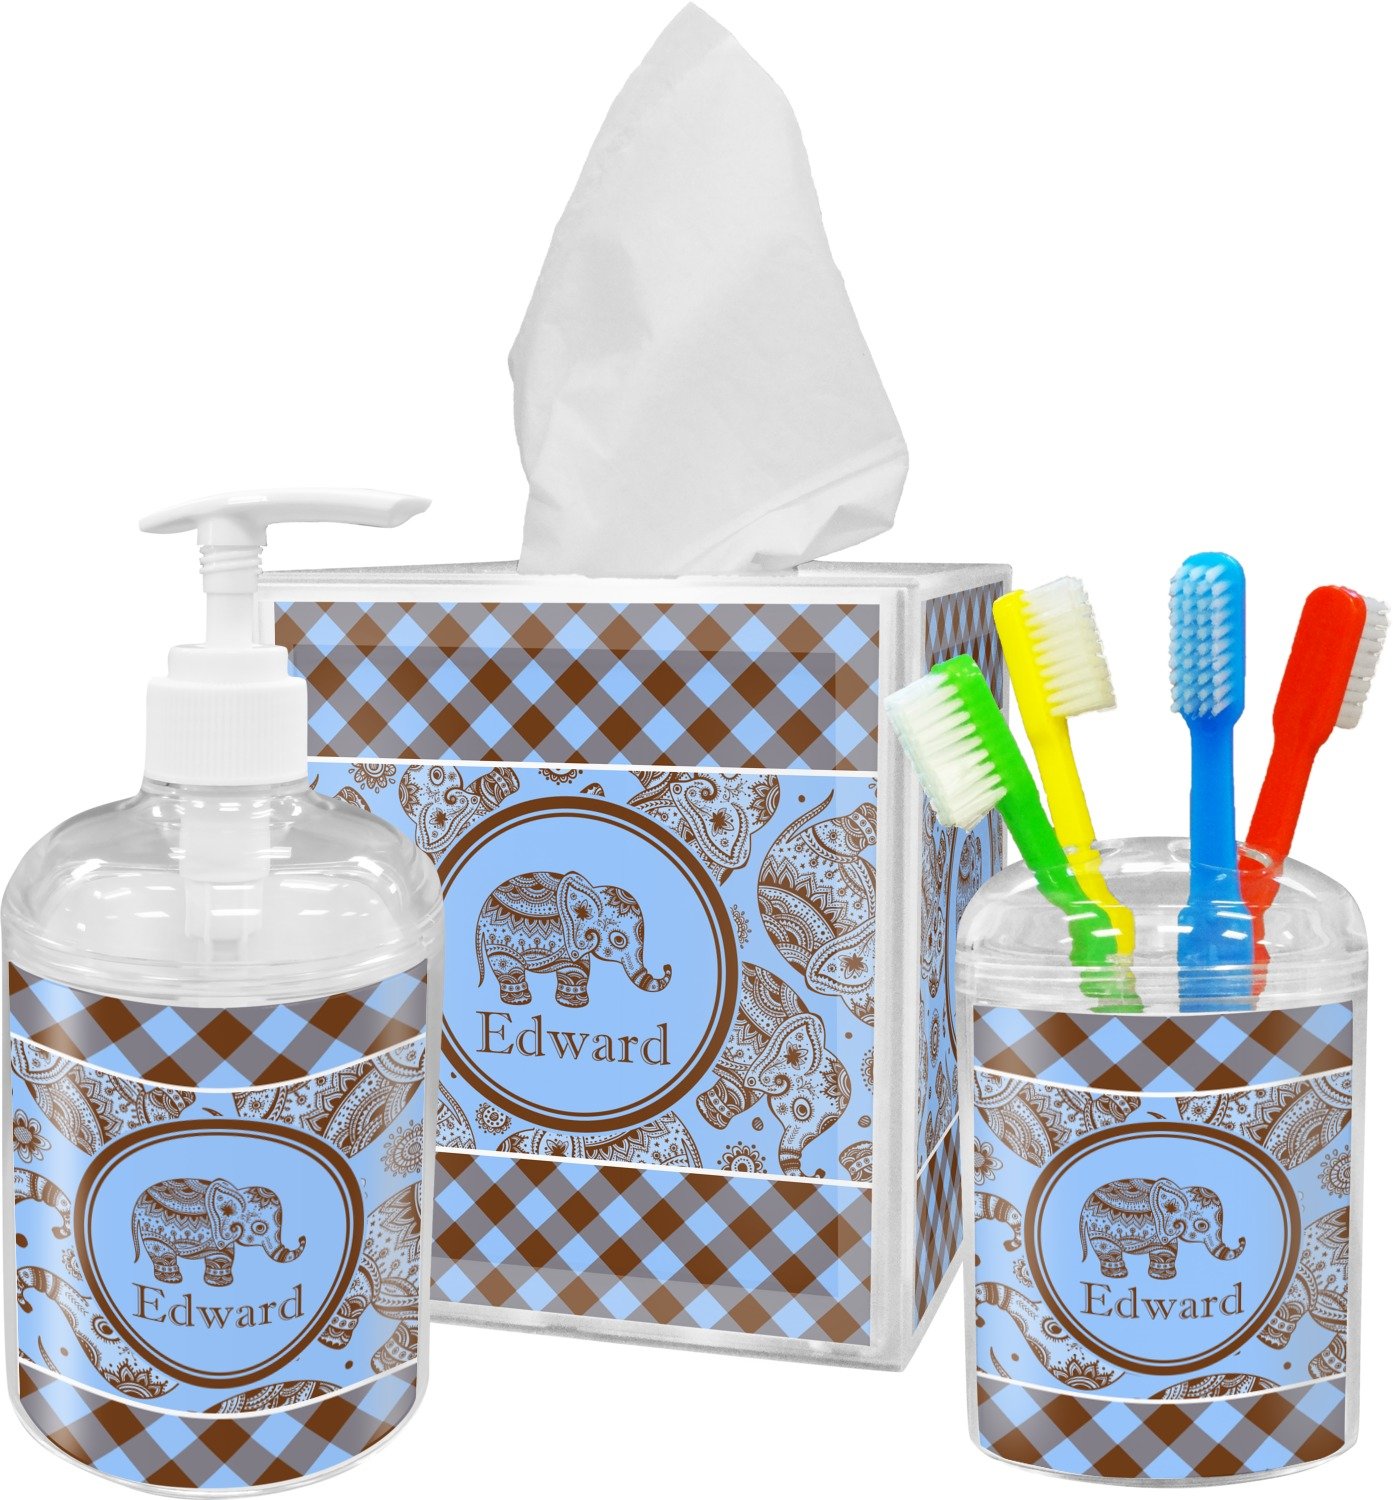 Gingham & Elephants Bathroom Accessories Set (Personalized)